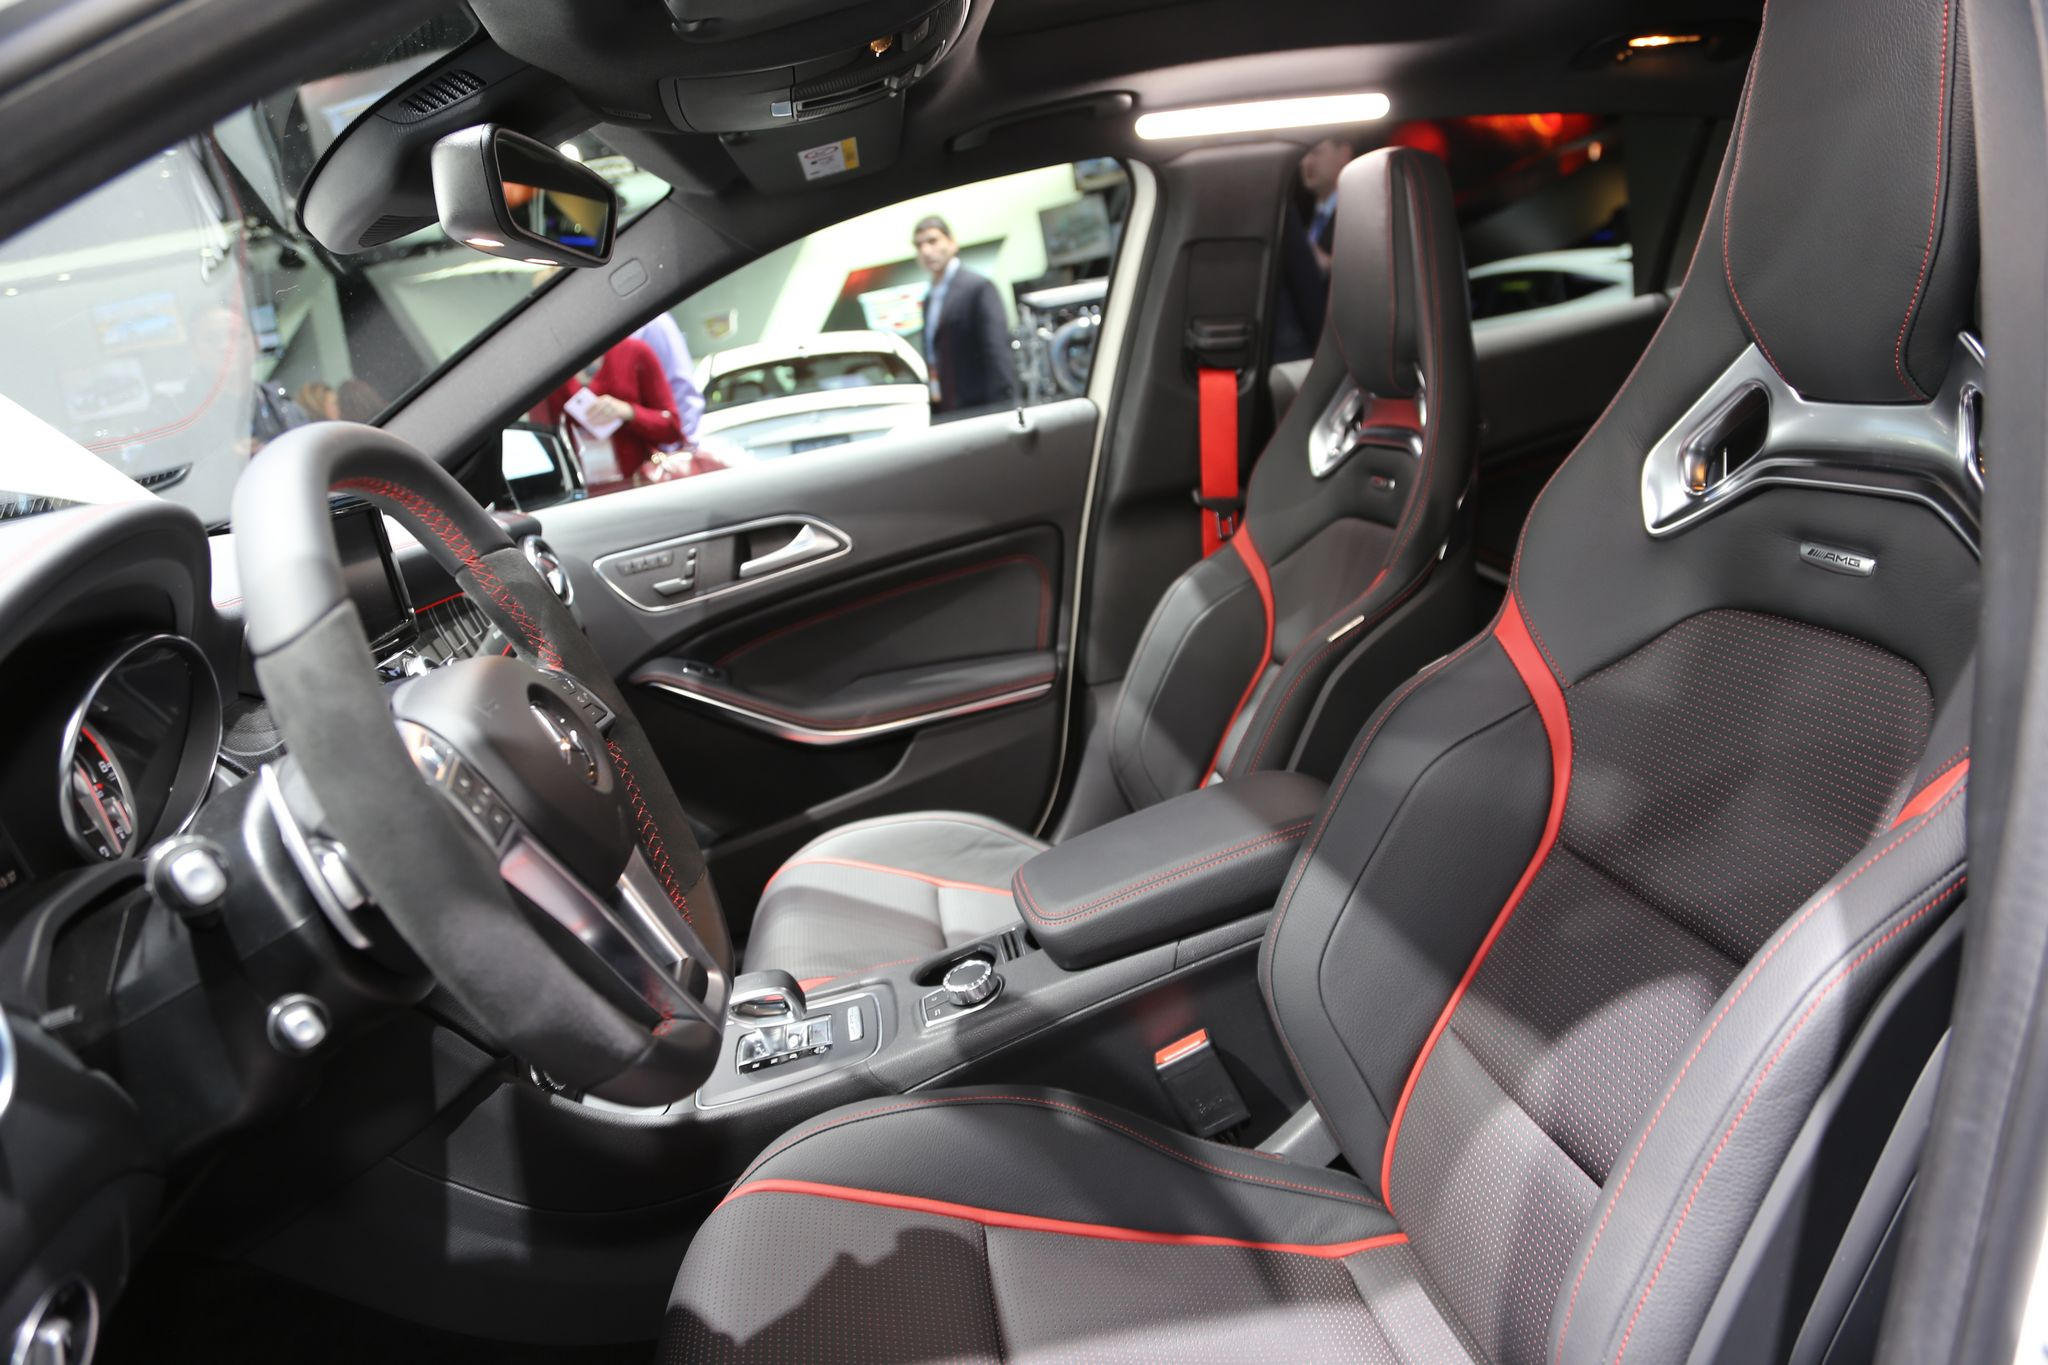 GLA 45 AMG 4MATIC interior - BenzInsider.com - A Mercedes-Benz Fan Blog